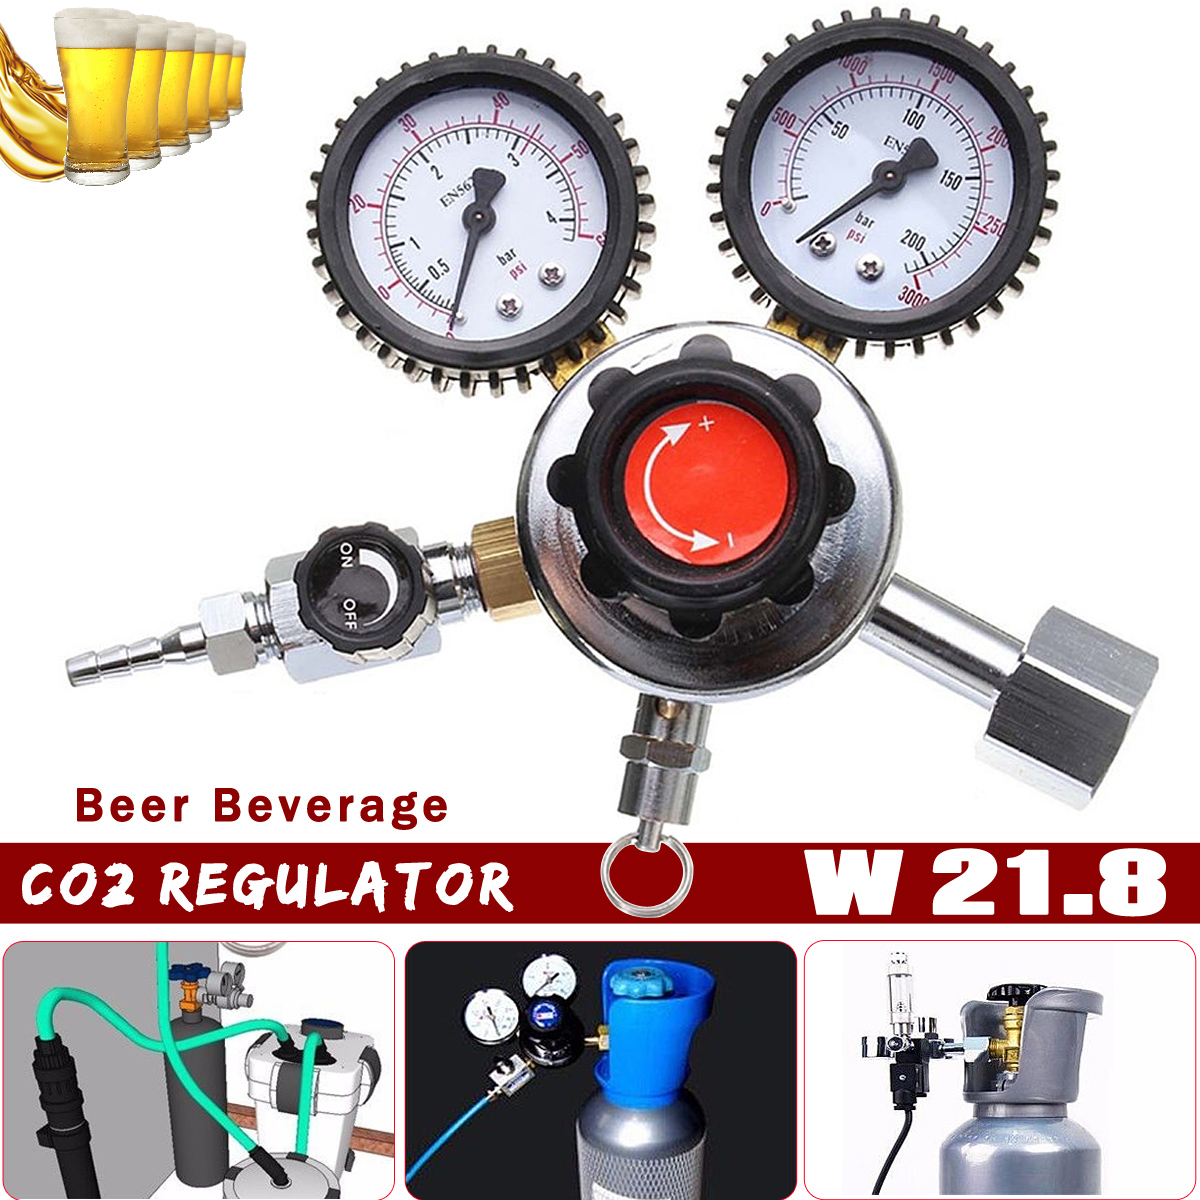 Zeast 1Pcs Dual Gauge CO2 Regulator Beer Beverage Decompressor Home Brew Gas Bar Accessories Beer Carbon Dioxide Reducer factory direct carbon dioxide gas welding gas mixture co2 pressure reducer heating accessories table gh100